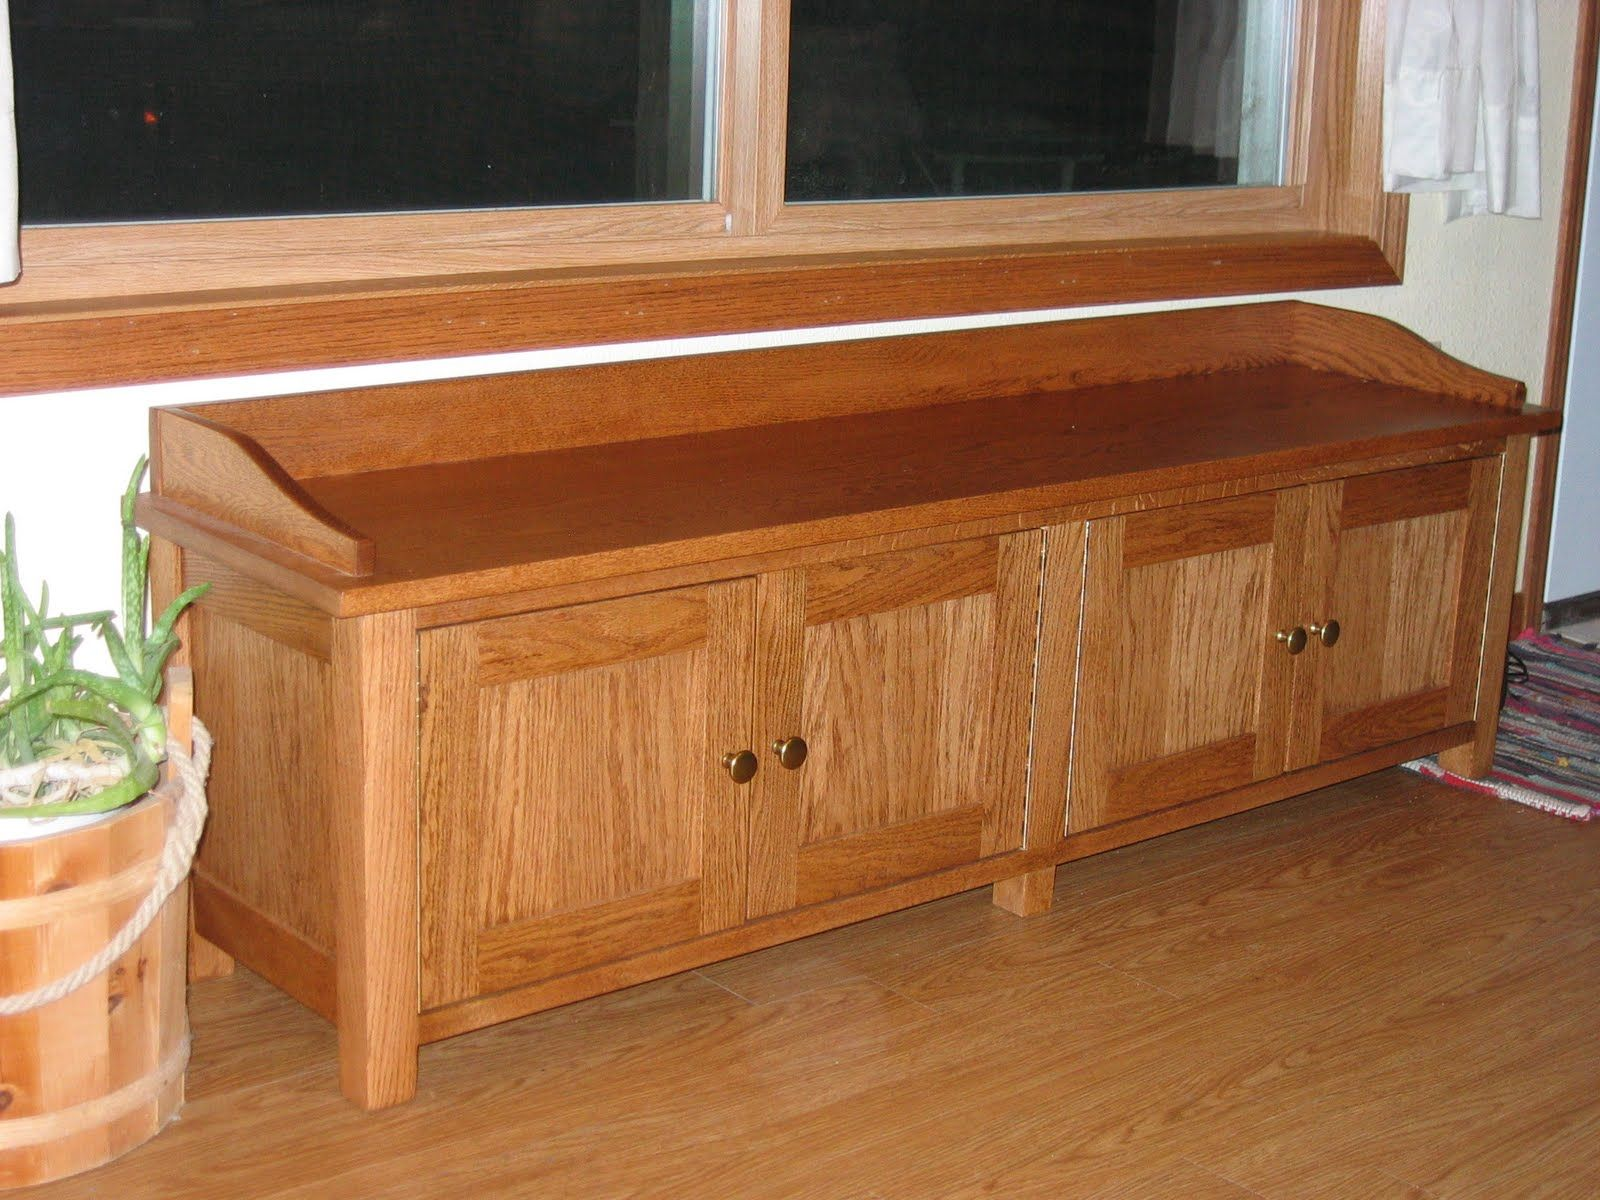 Genial Custom Made Oak Window Bench. Posted By The Beginning Farmeru0027s Wife